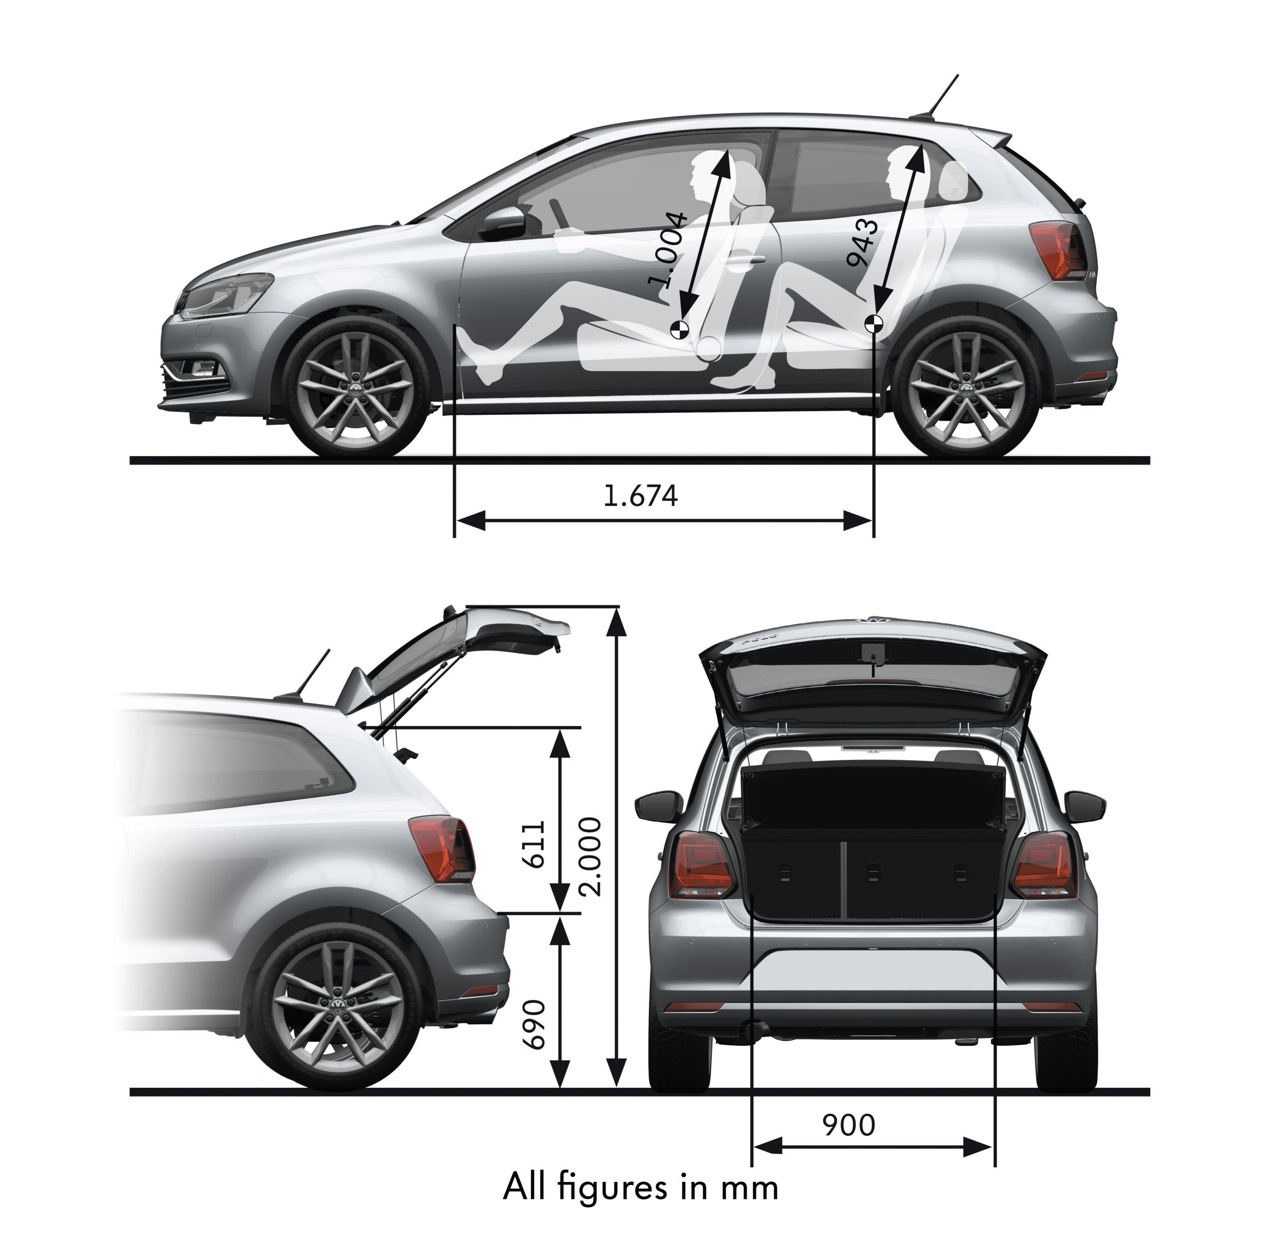 2014 volkswagen polo cargo dimensions. Black Bedroom Furniture Sets. Home Design Ideas